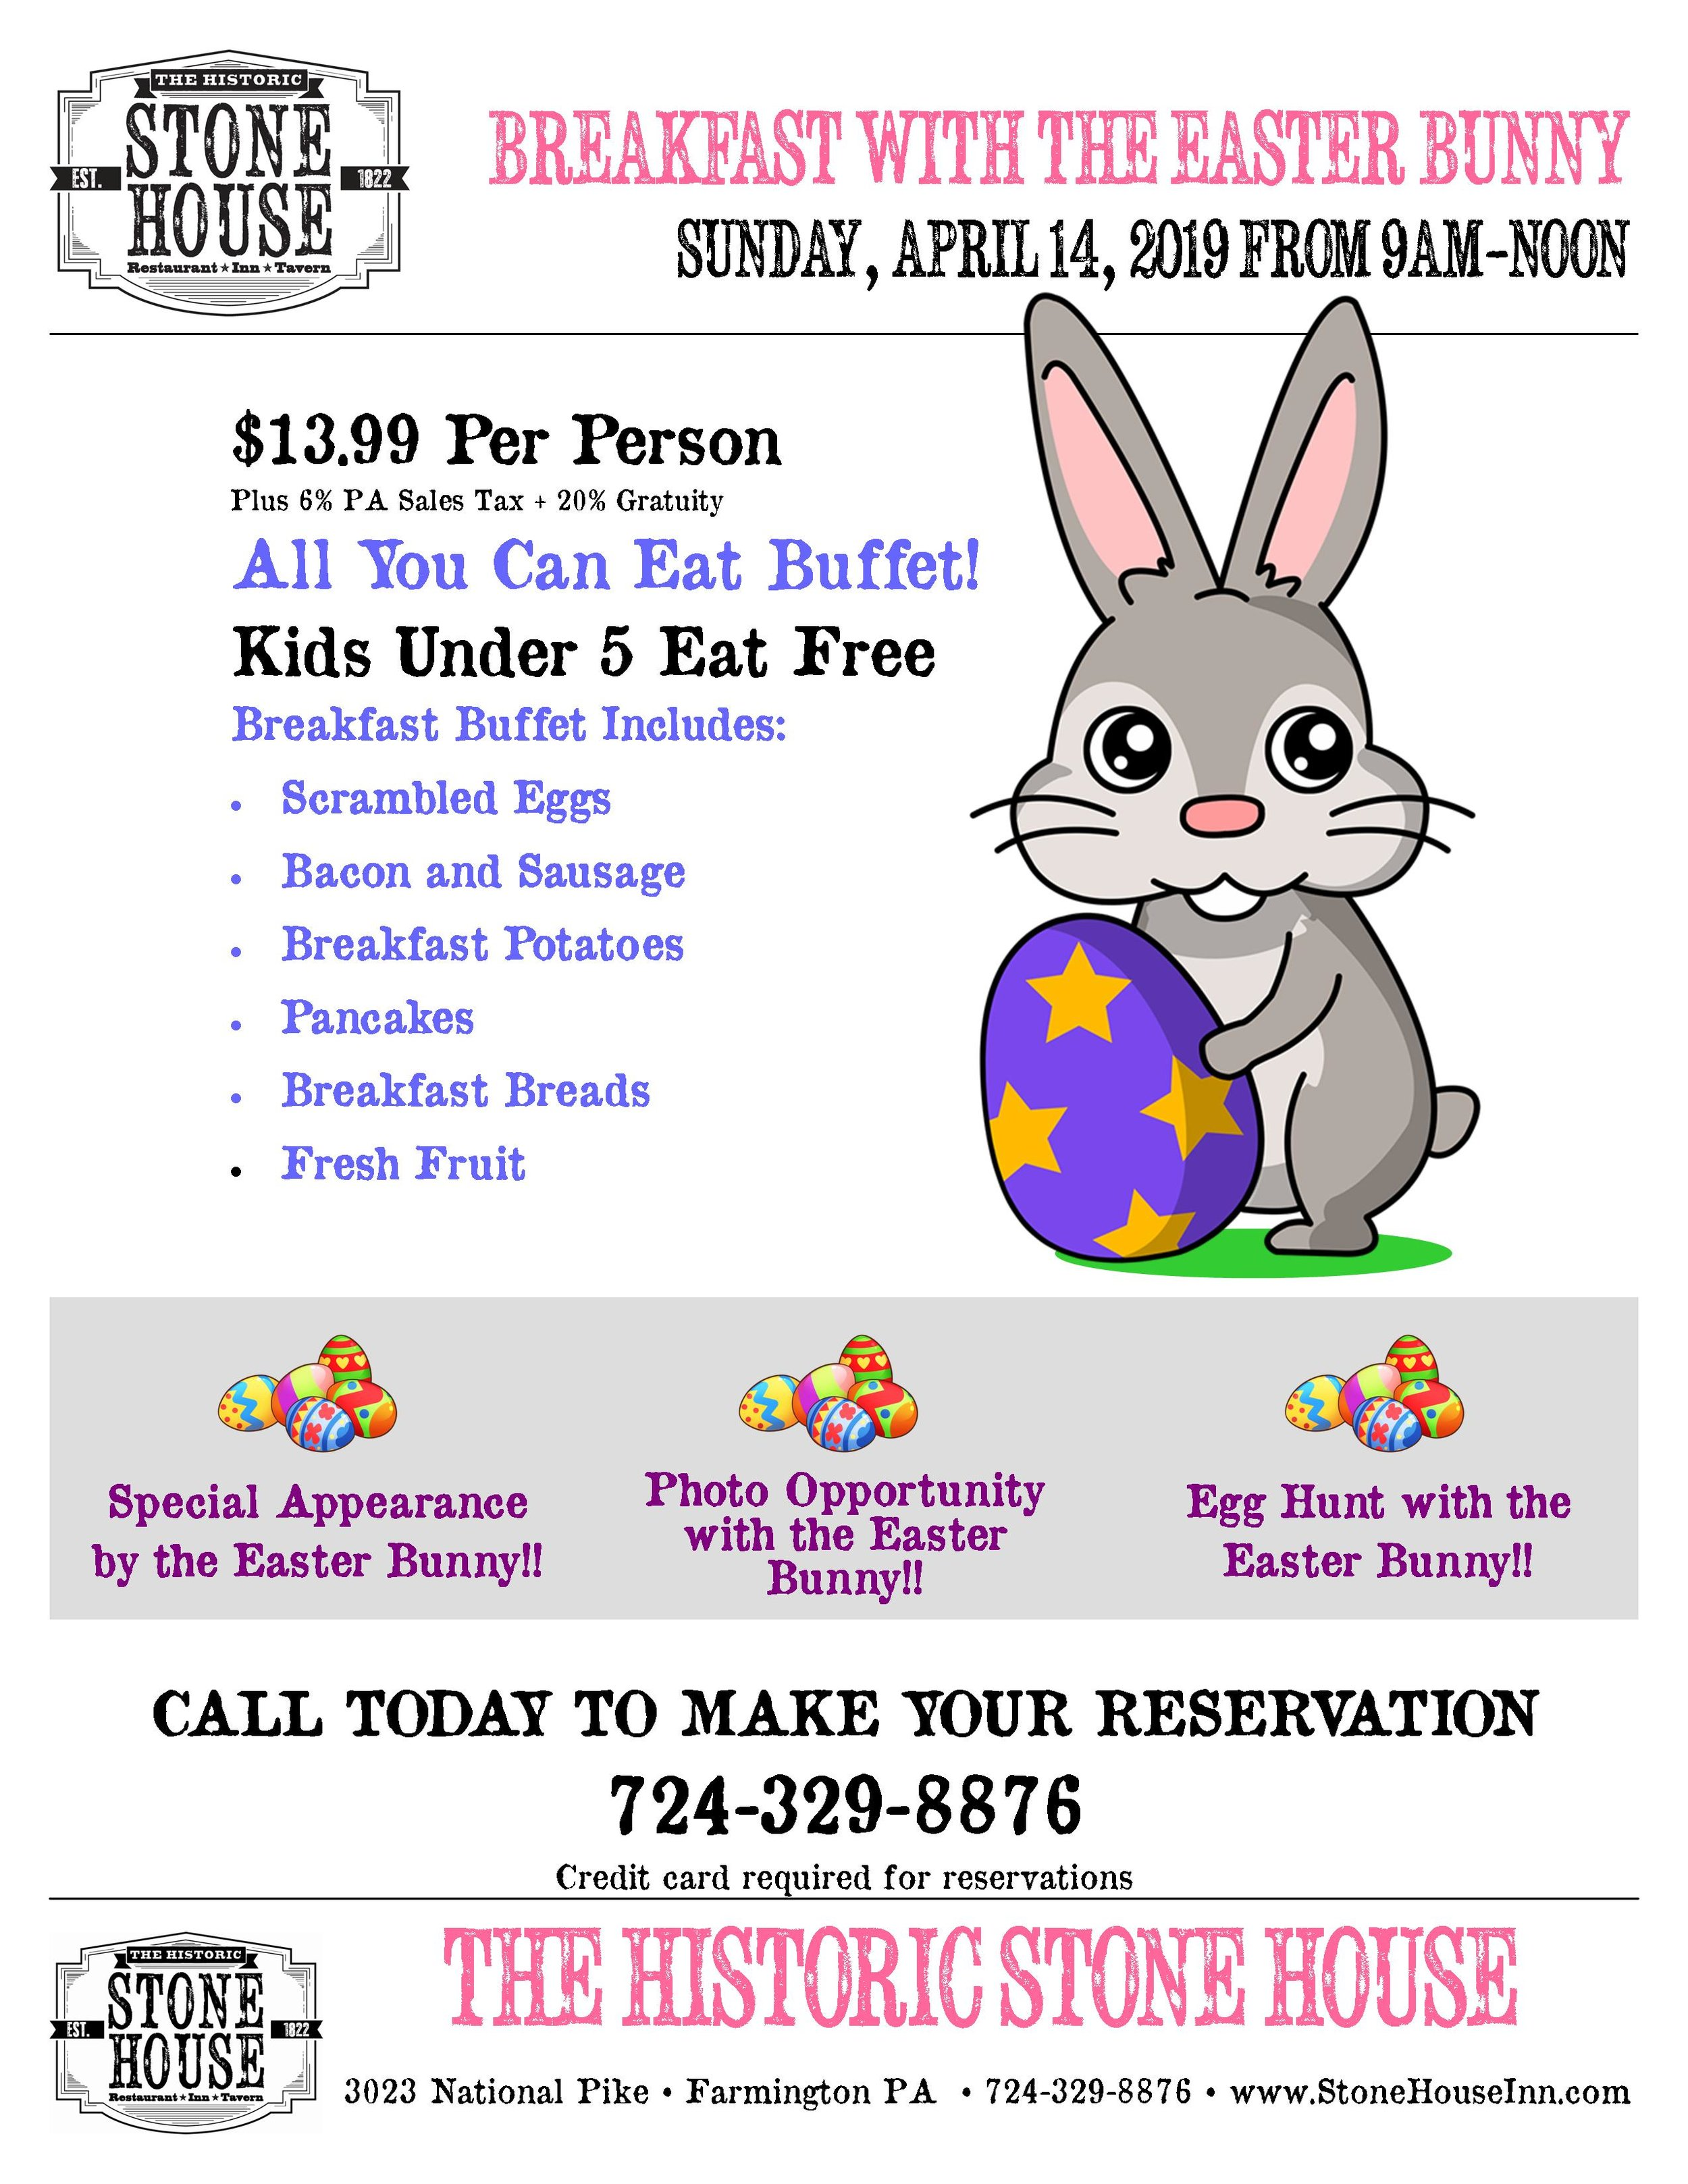 Stone House Breakfast with Easter Bunny 2019.jpg